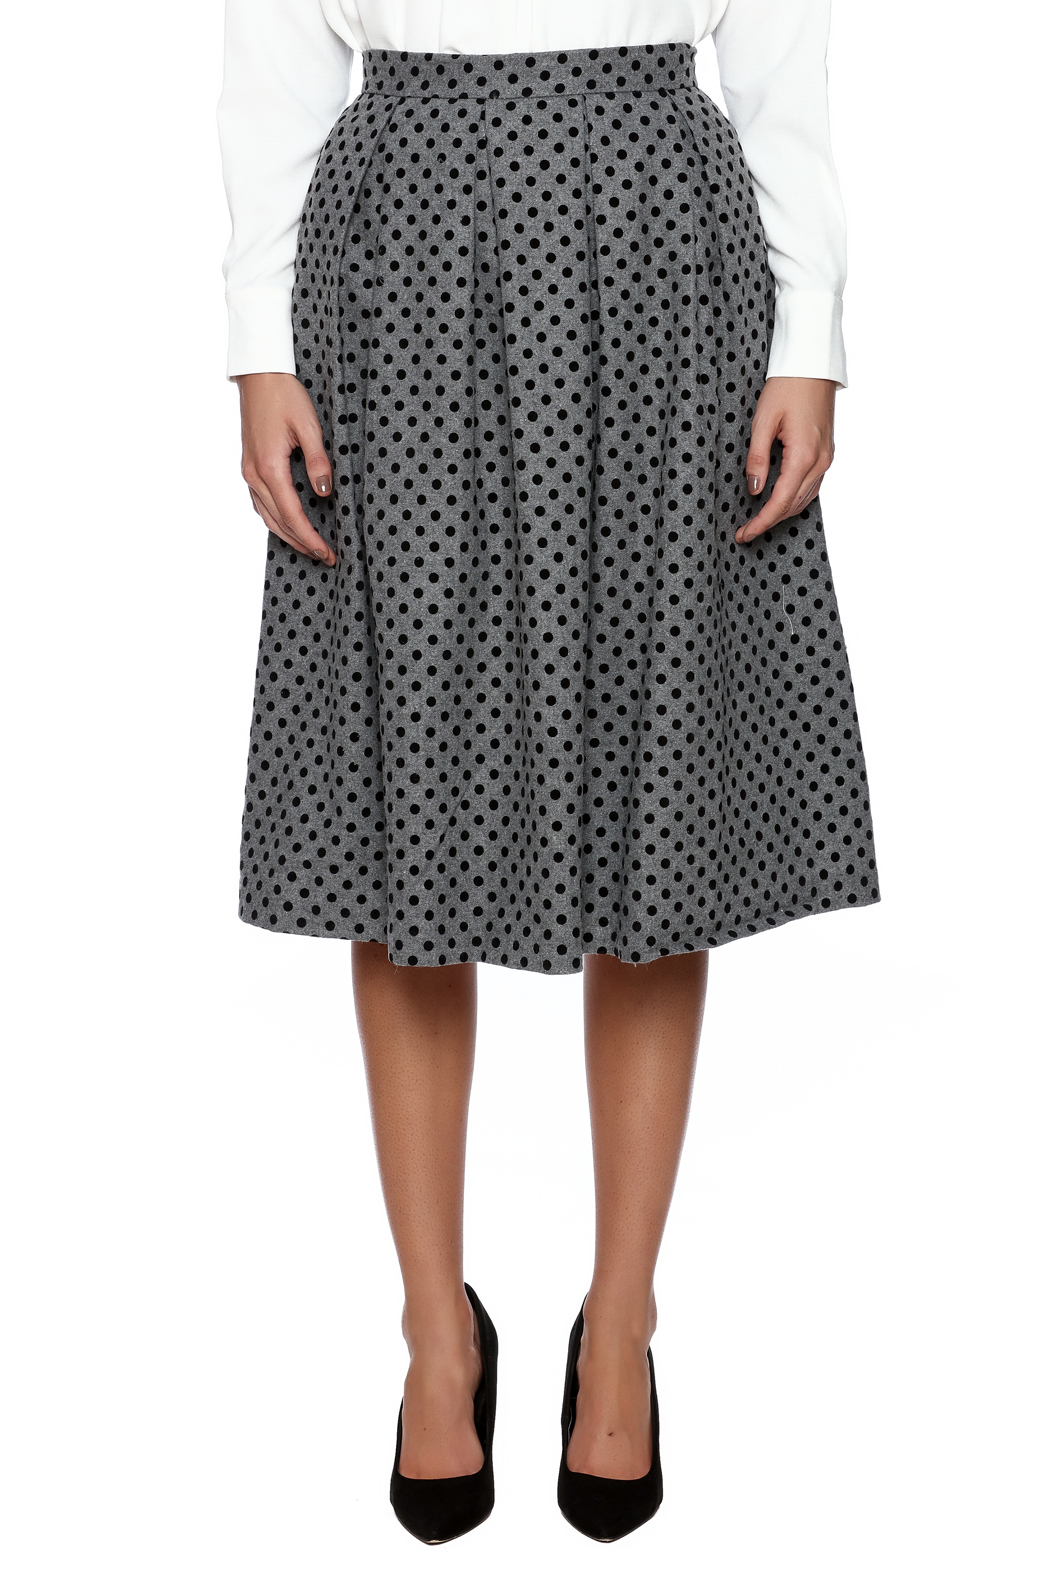 FRNCH Polka Dot Pleat Skirt - Side Cropped Image